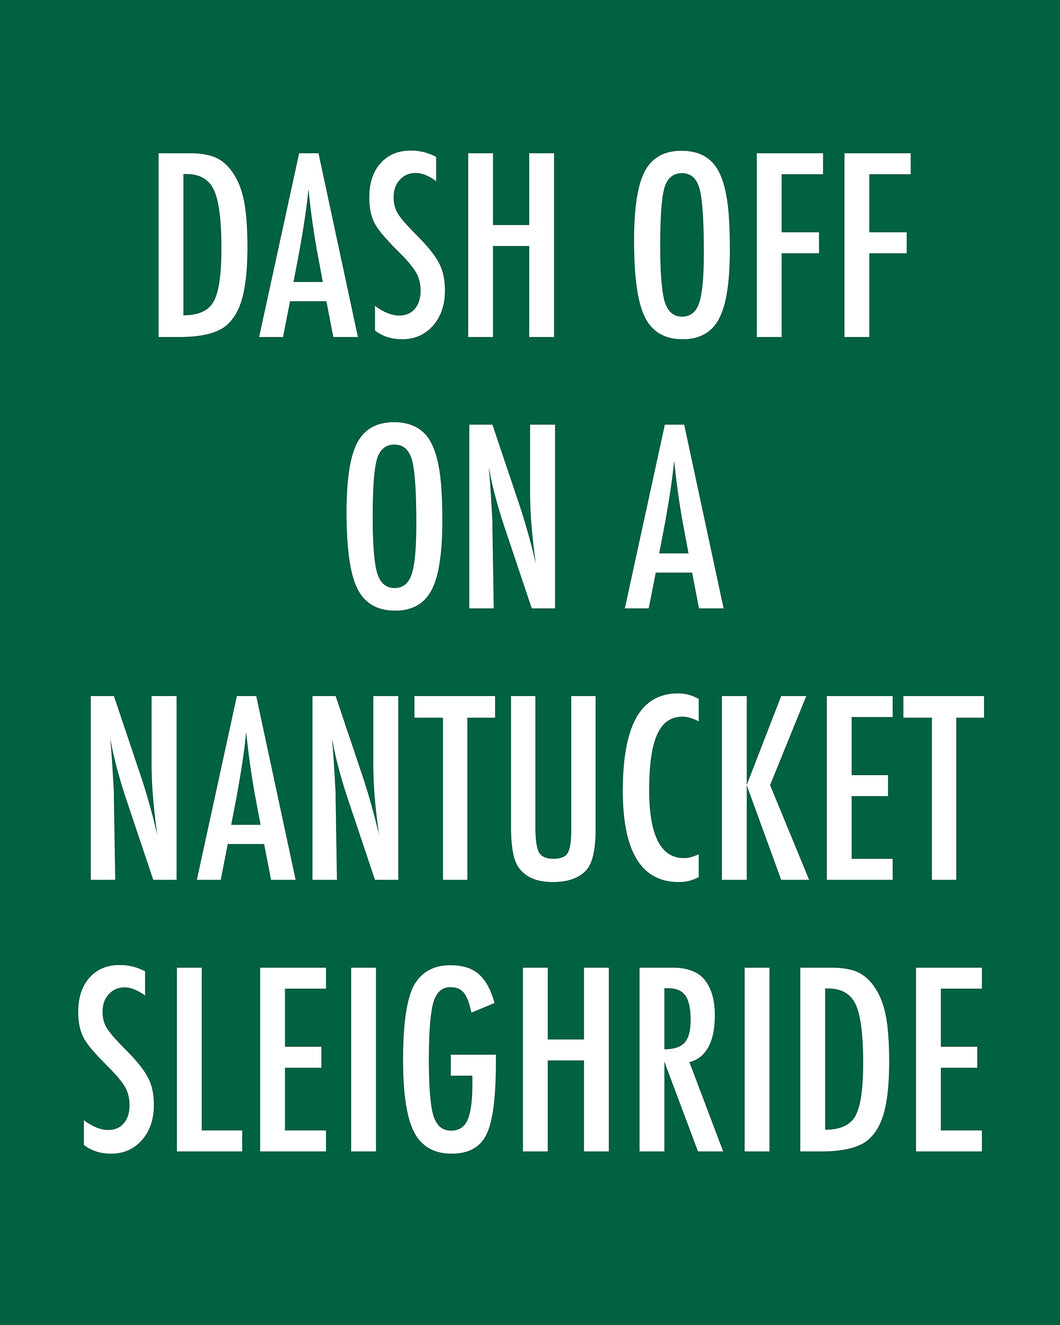 DASH OFF ON A NANTUCKET SLEIGHRIDE - Color Pop Print